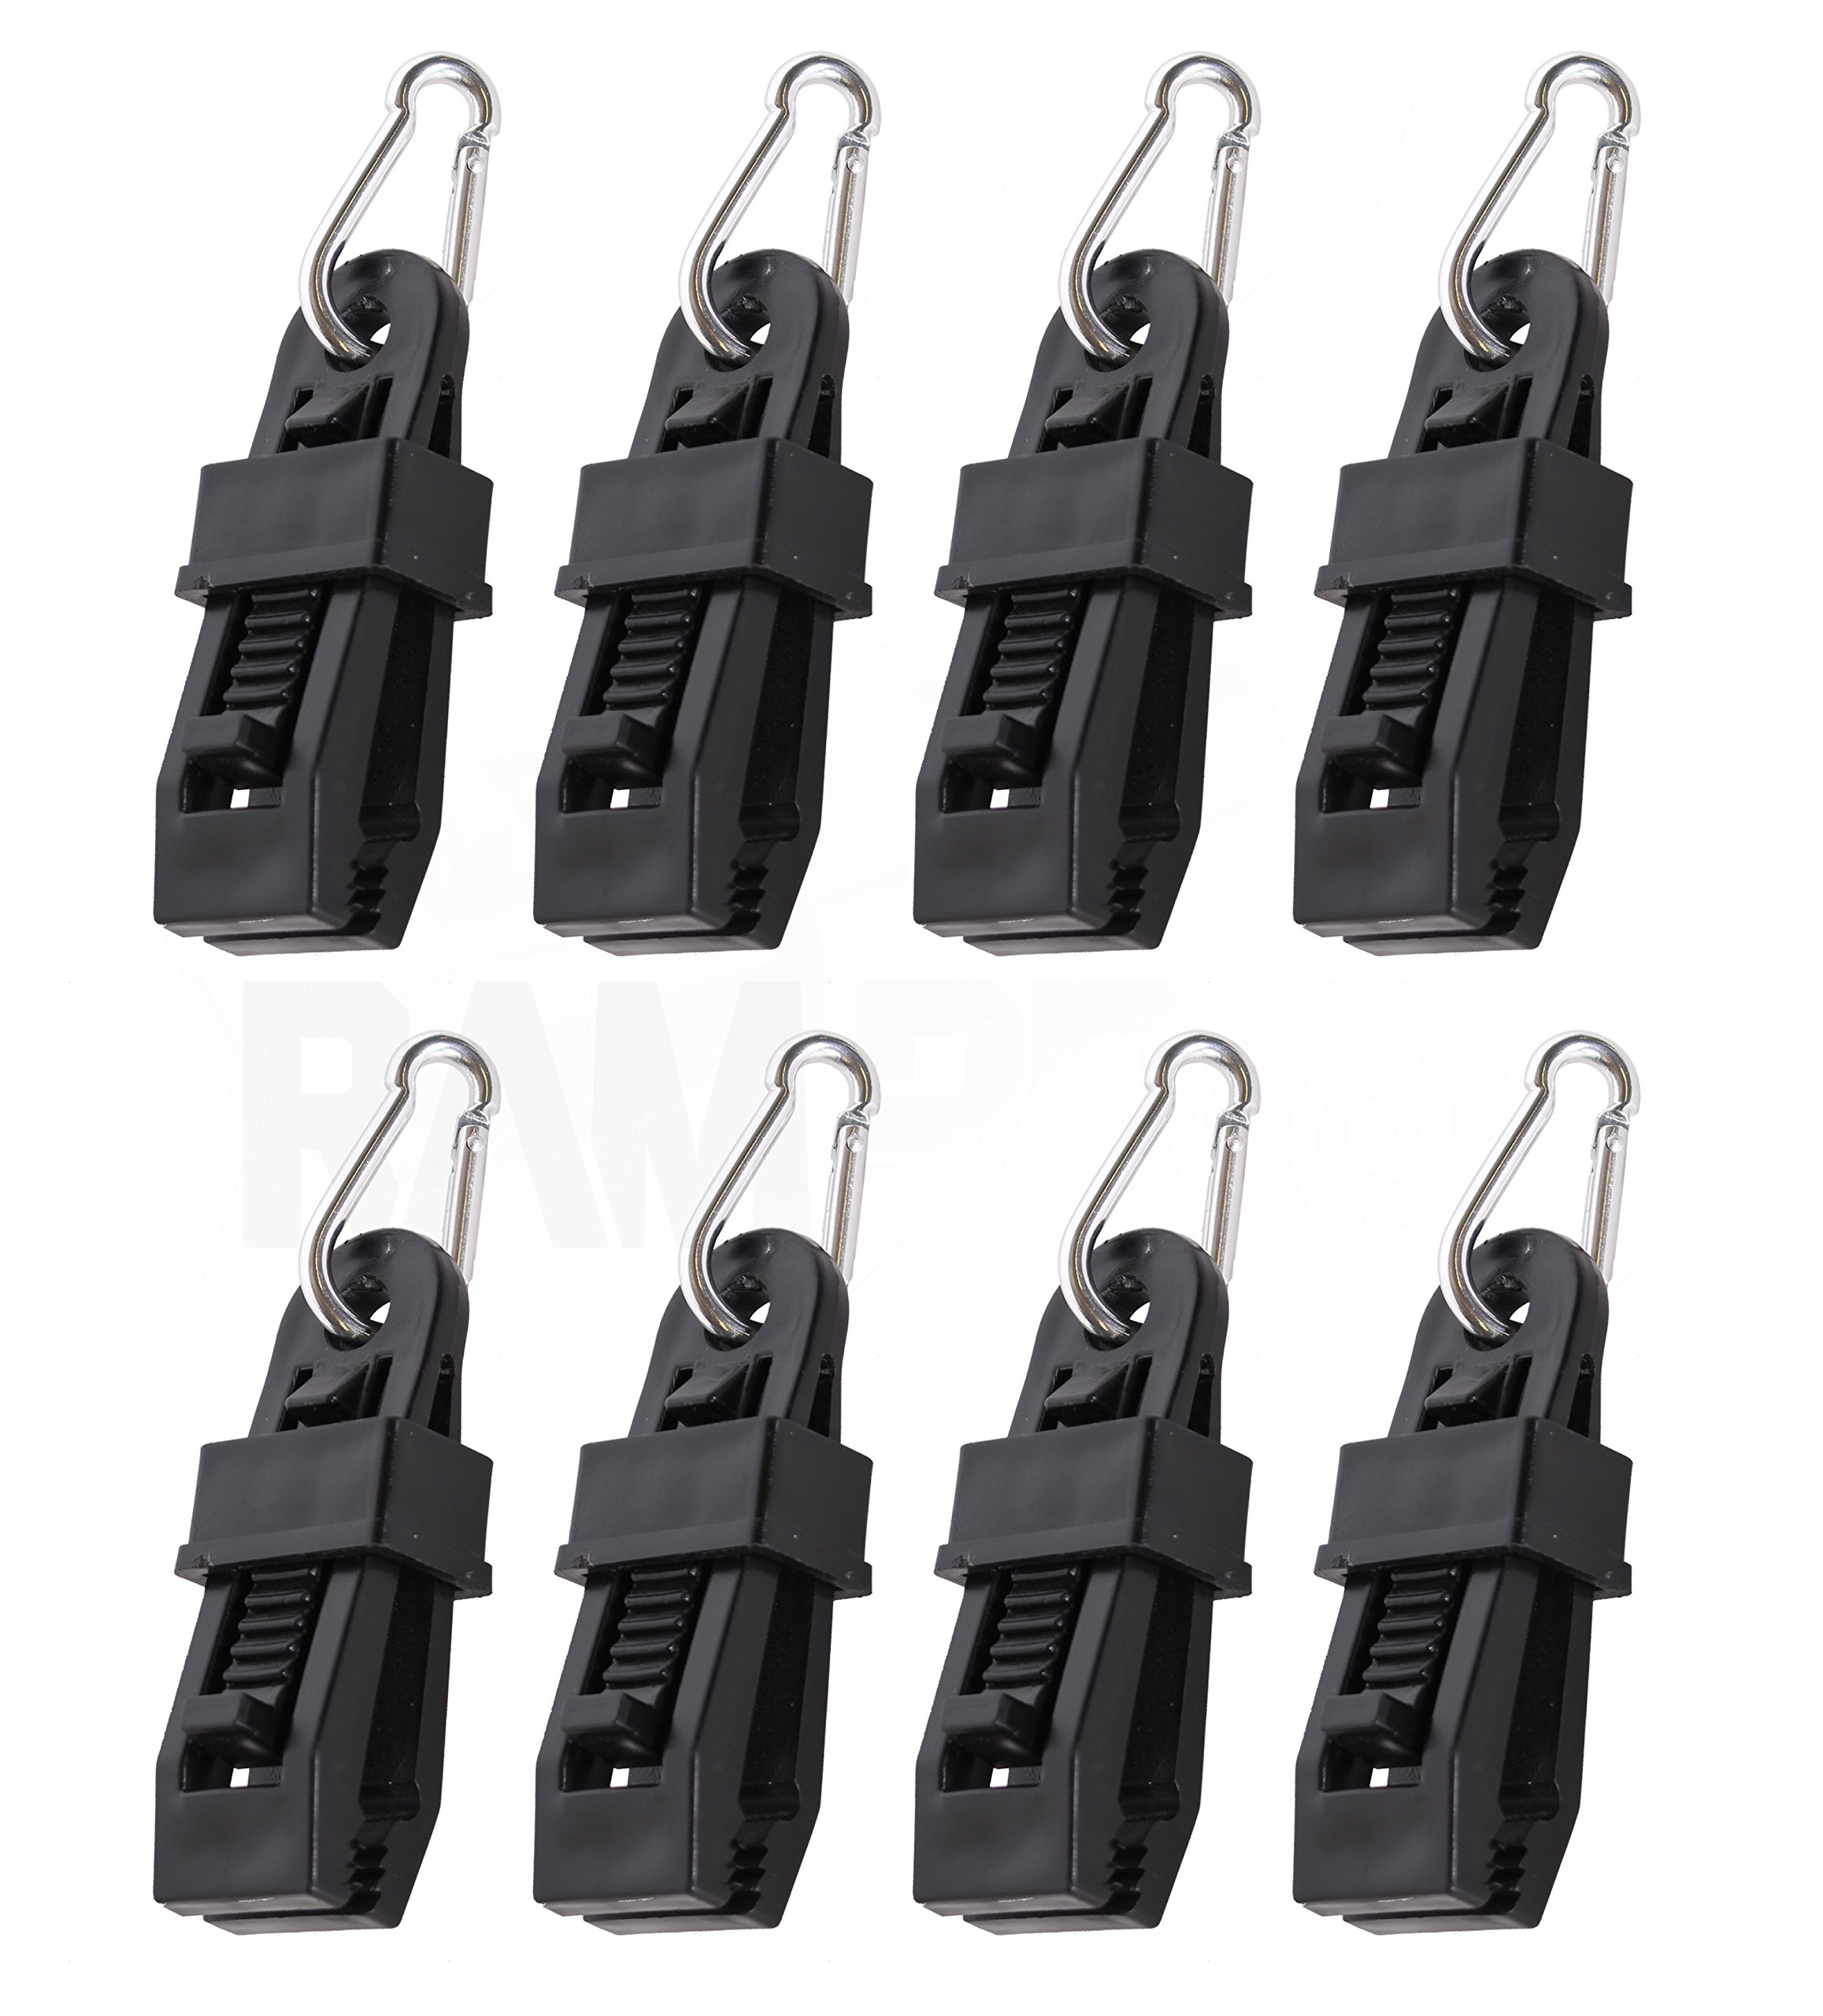 8Pc Heavy-Duty Tarp Clips with Carabiner - Sliding-Lock Grip - Quilt Hangers